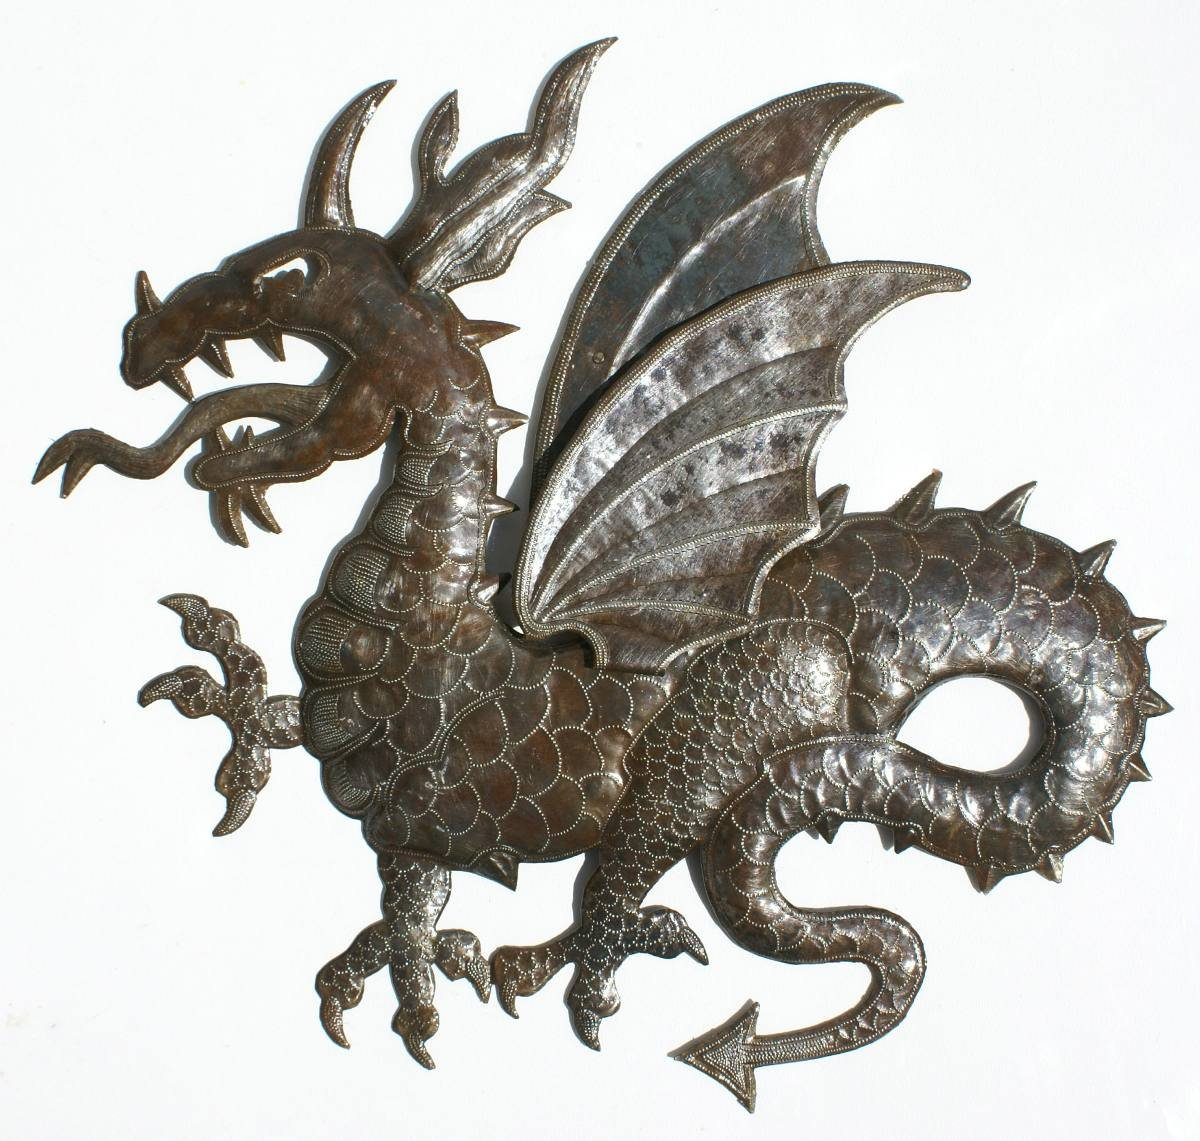 El dragon de metal decoracion mural para pared de 60cm for Adornos pared metal